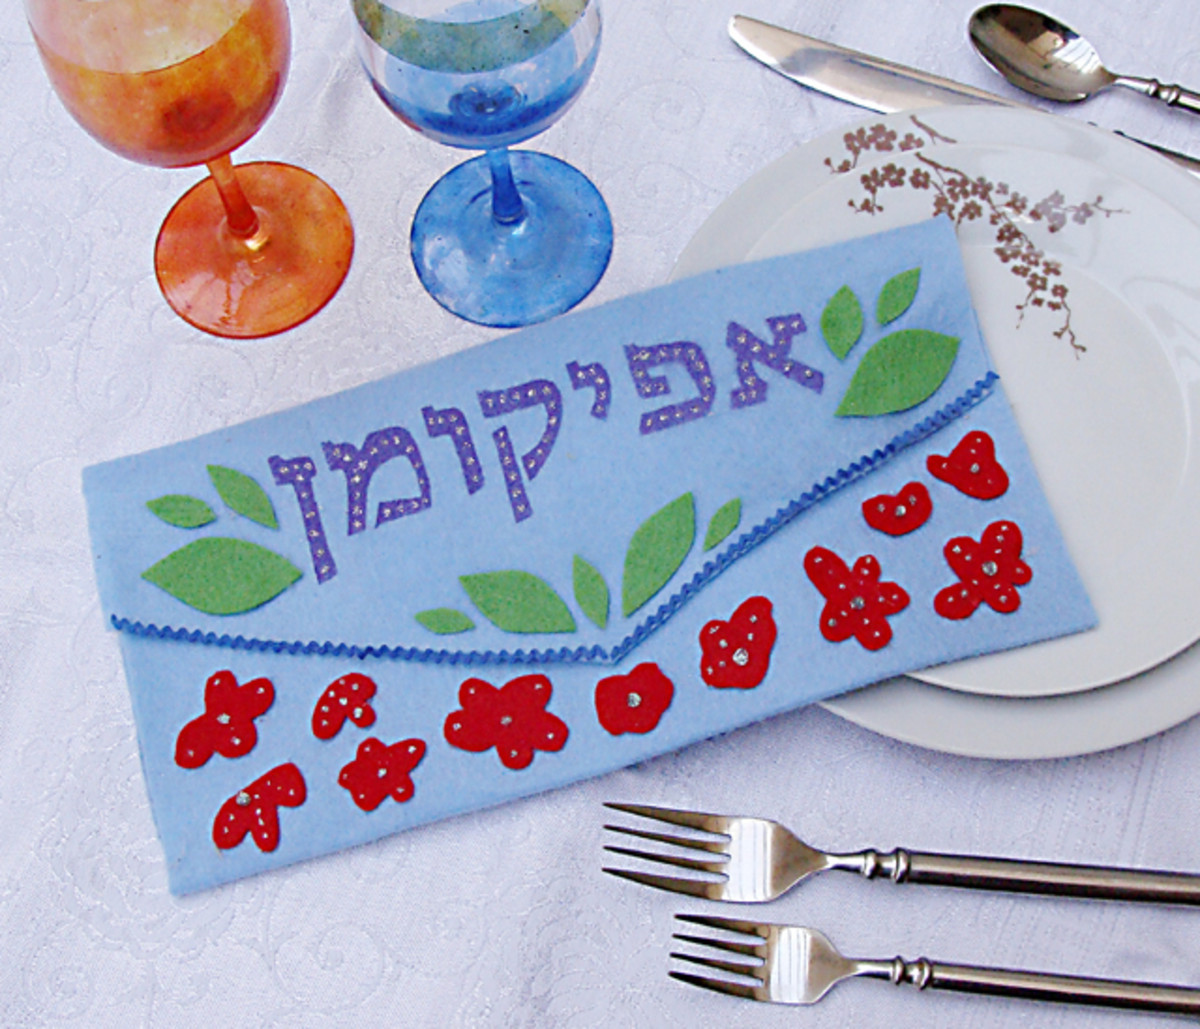 For Every Jewish Holiday There Are Loads Of Crafts We Can Make With Our Kids Or Even On Own As Adults It Is Fun To Have Personalized Items Use